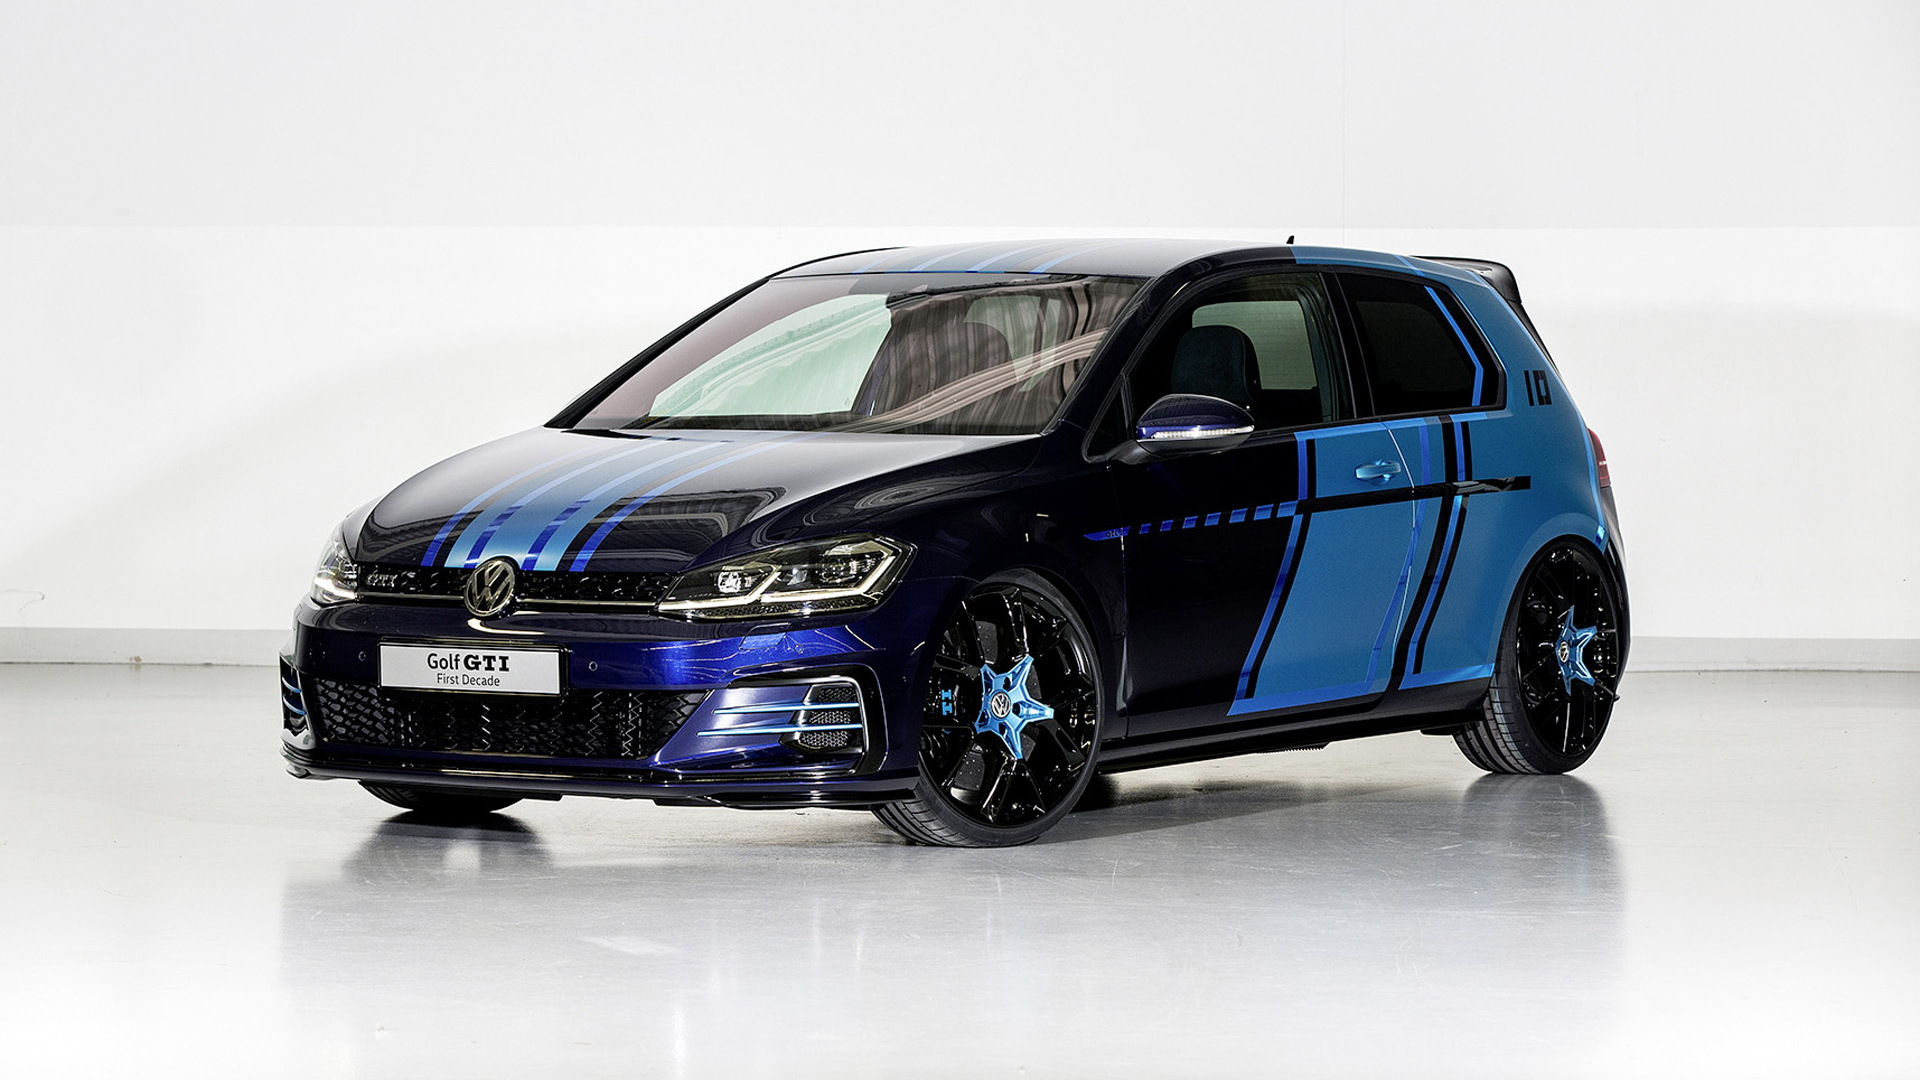 Volkswagen Golf GTI First Decade concept, 2017 Wörthersee Tour